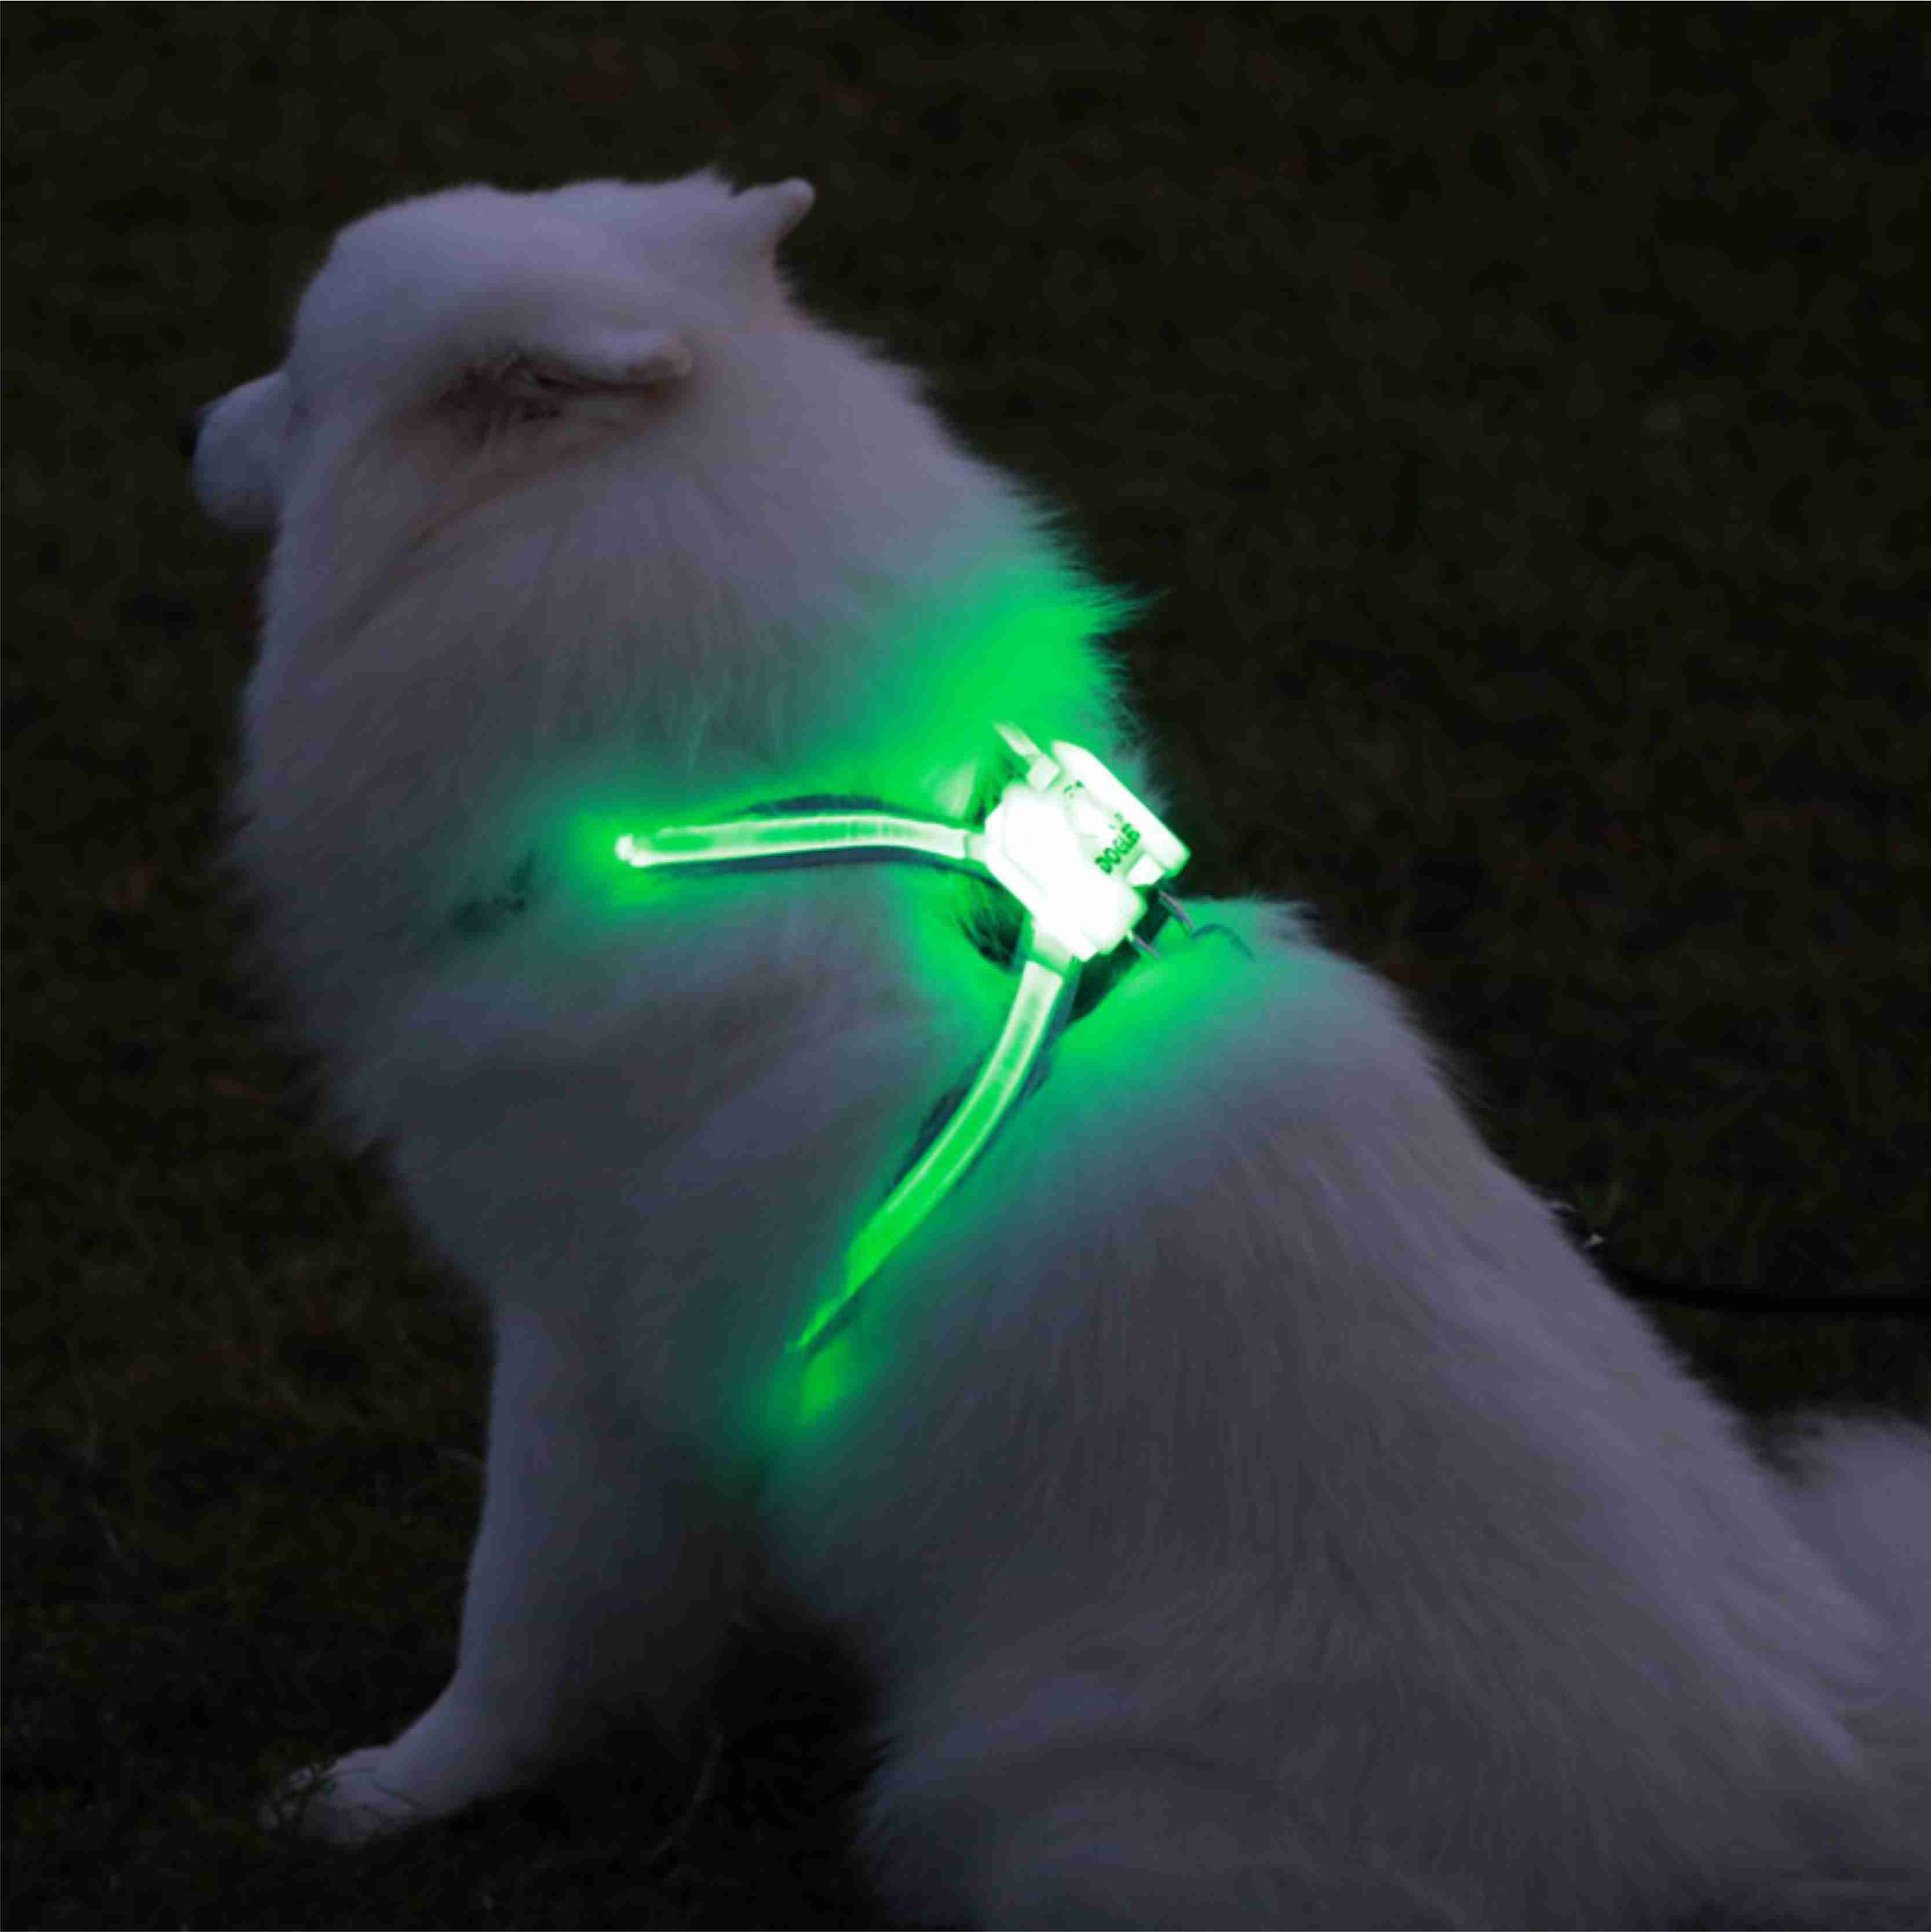 cc simon dog harness vest led dog collar flashing dog harness led light up collar USB rechargeable